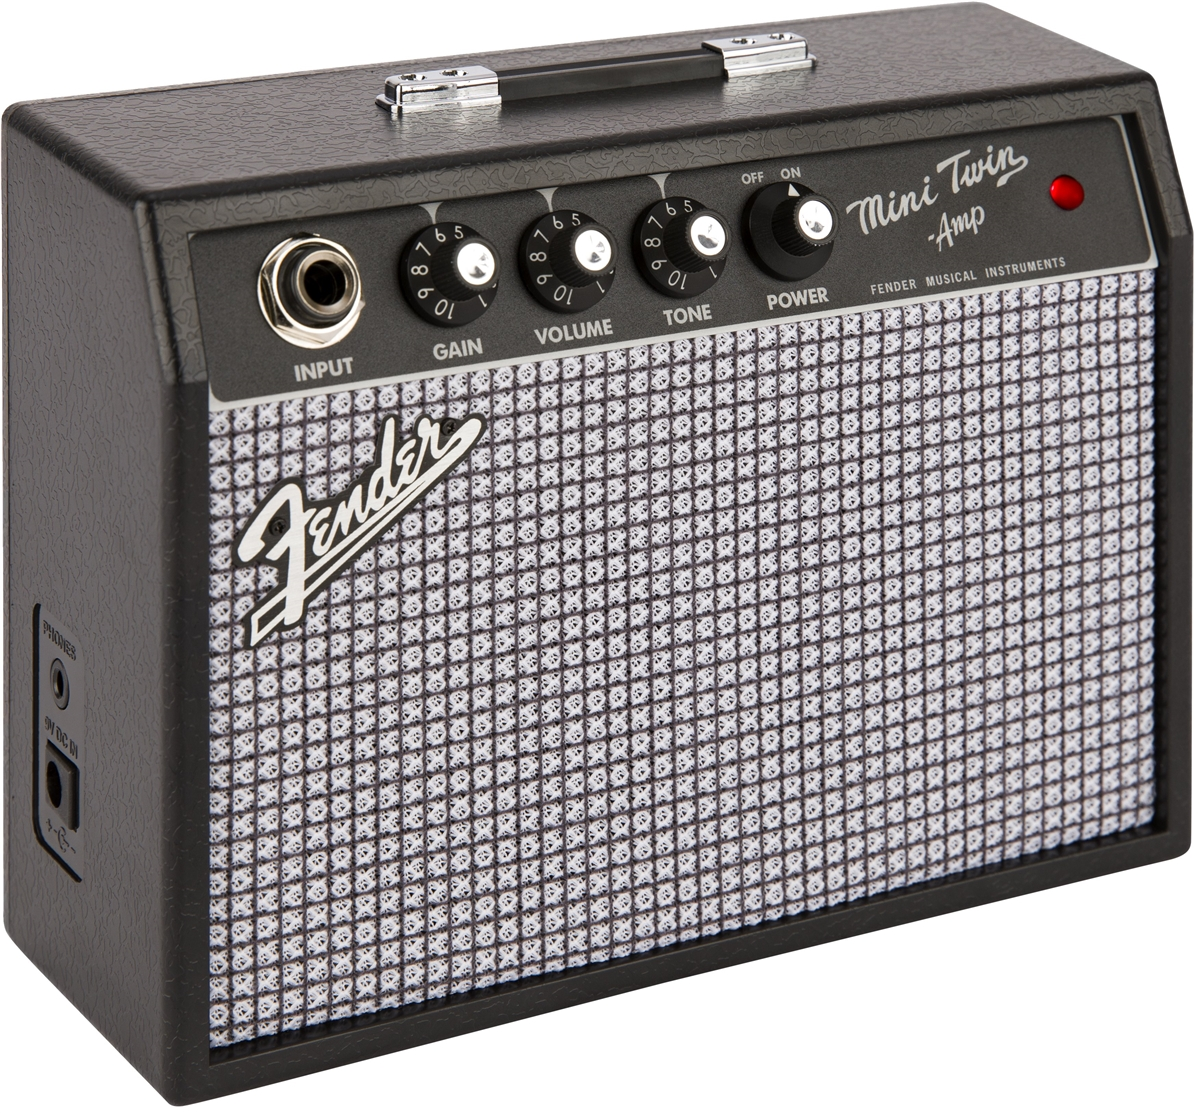 Mini 65 Twin Amp Accessories Apmilifier Guitar Bass Amplifier Circuit And Explanation Tap To Expand